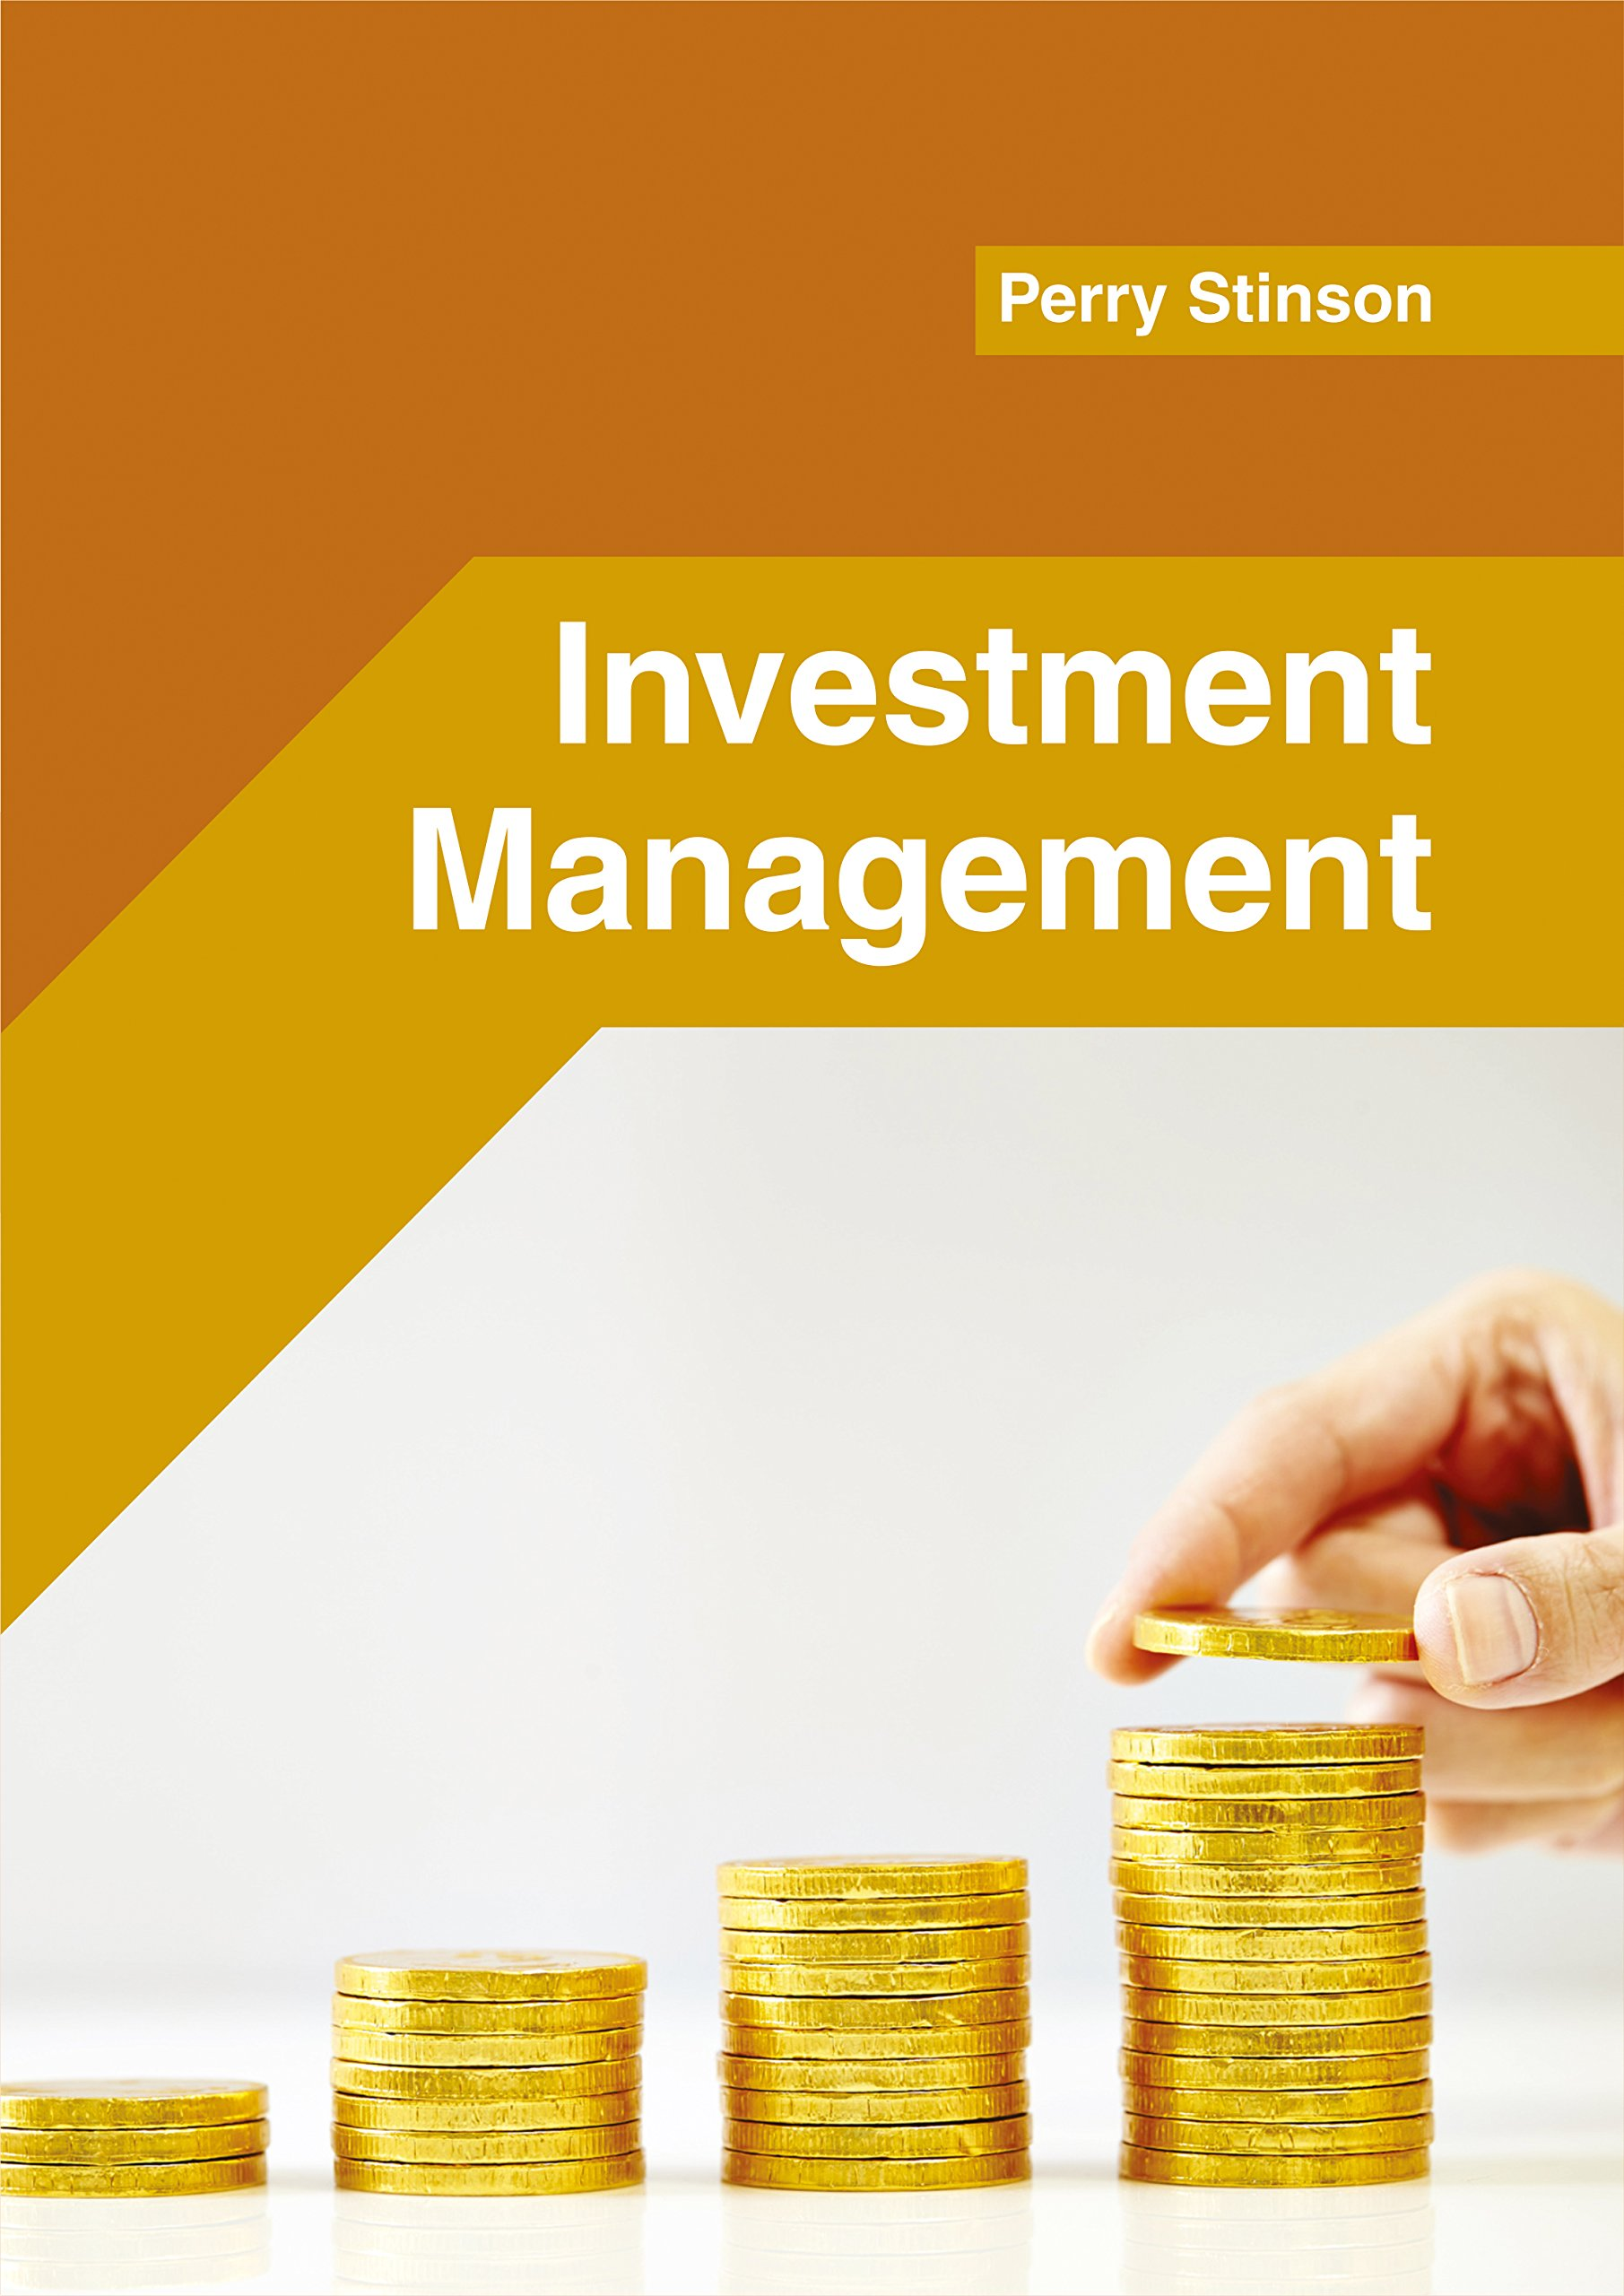 Investment Management by Willford Press